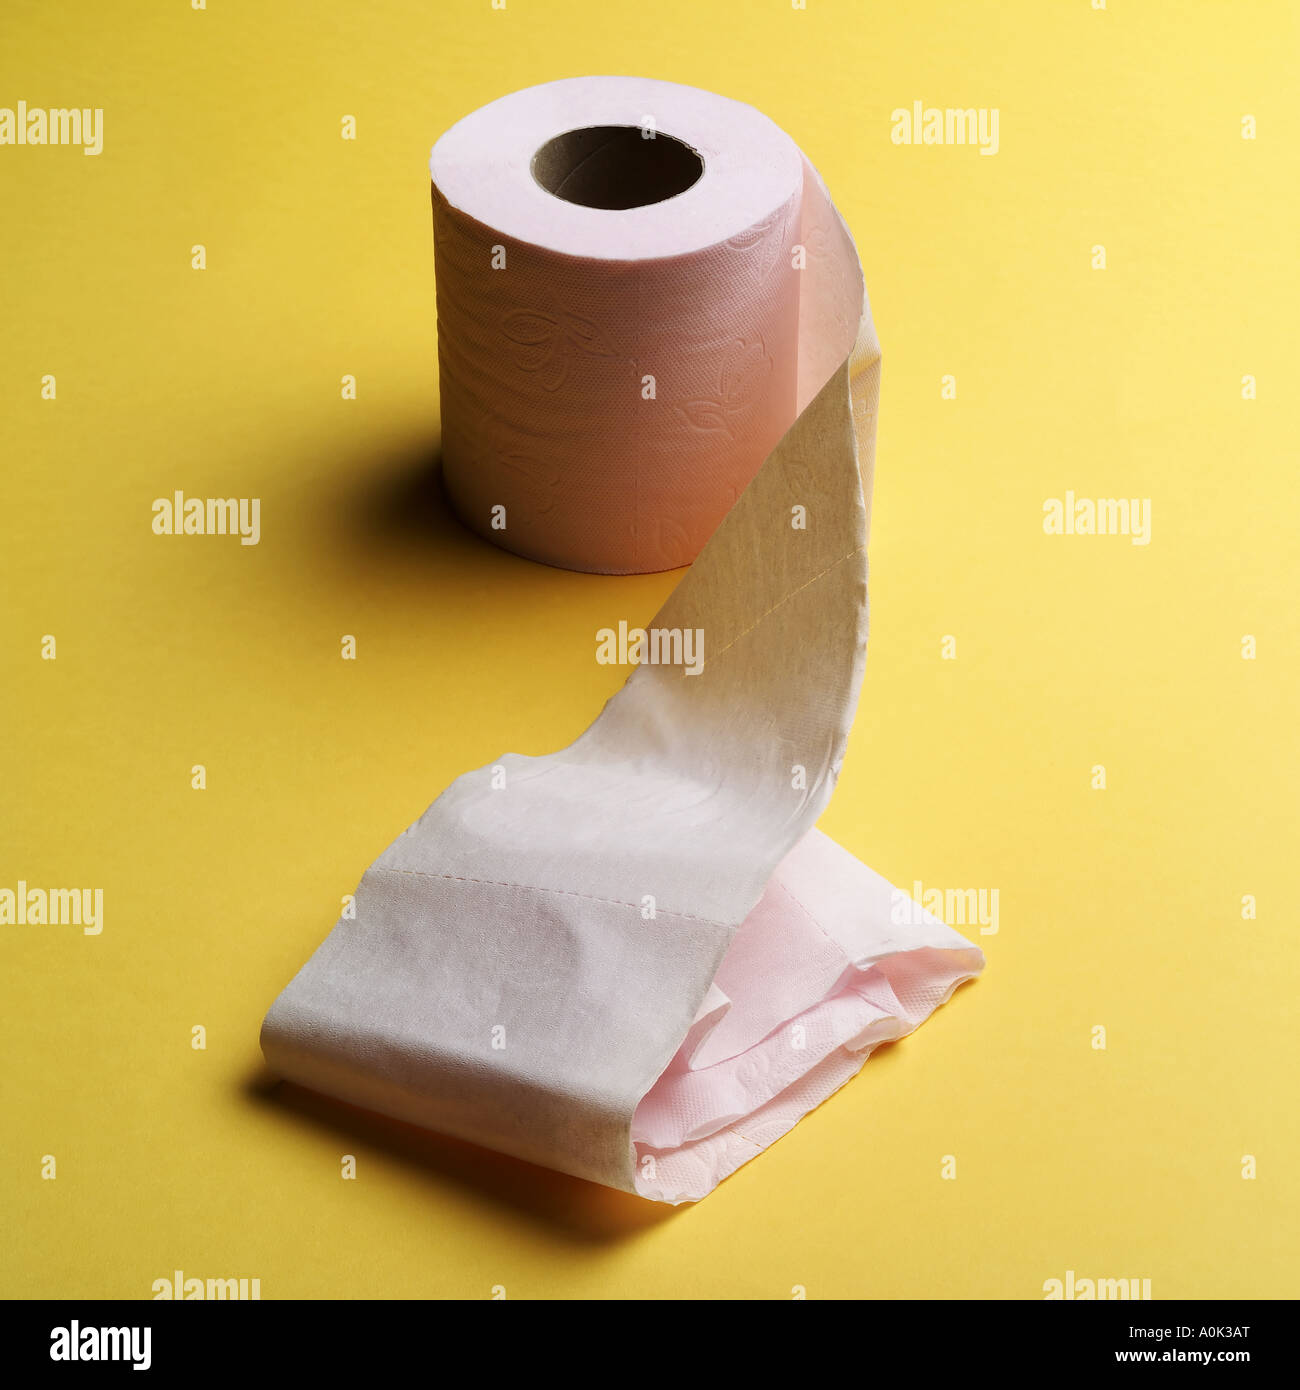 ROLL OF PINK TOILET PAPER ON YELLOW BACKGROUND - Stock Image